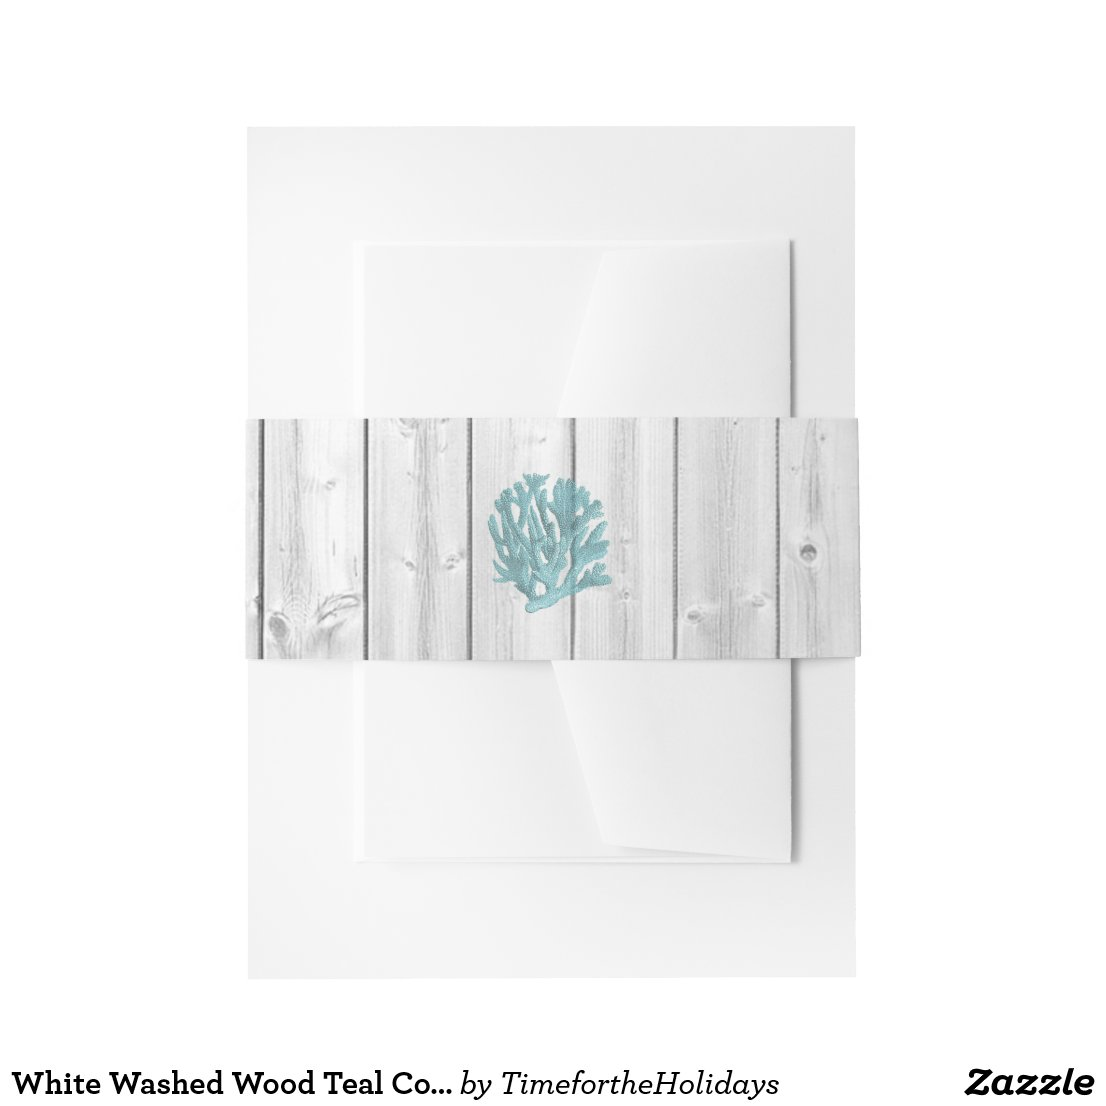 White Washed Wood Teal Coral Beach Wedding Band Invitation Belly Band